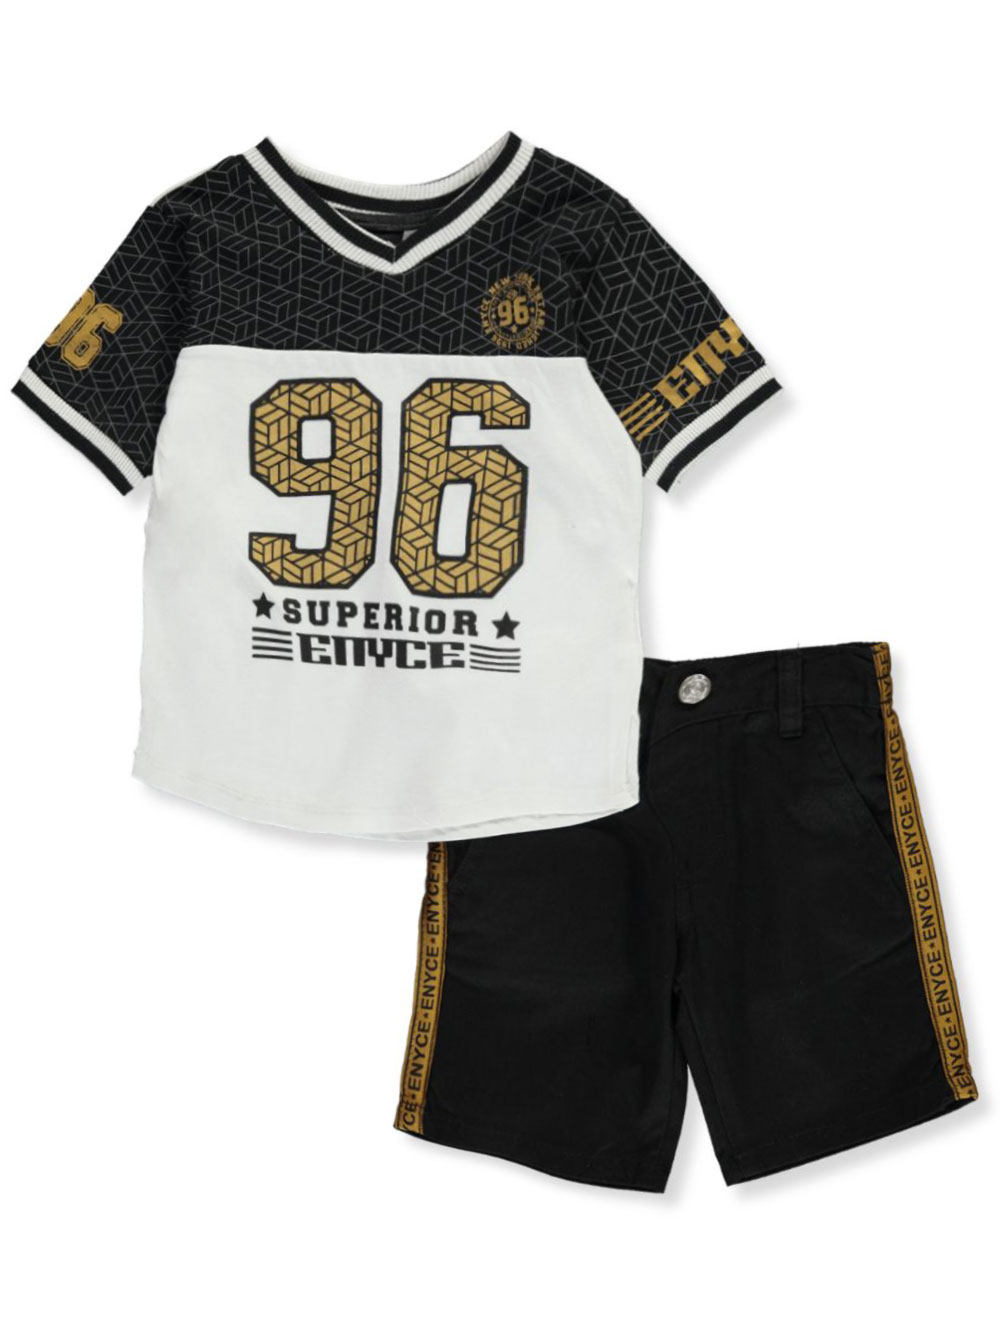 Superior 2-Piece Shorts Set Outfit